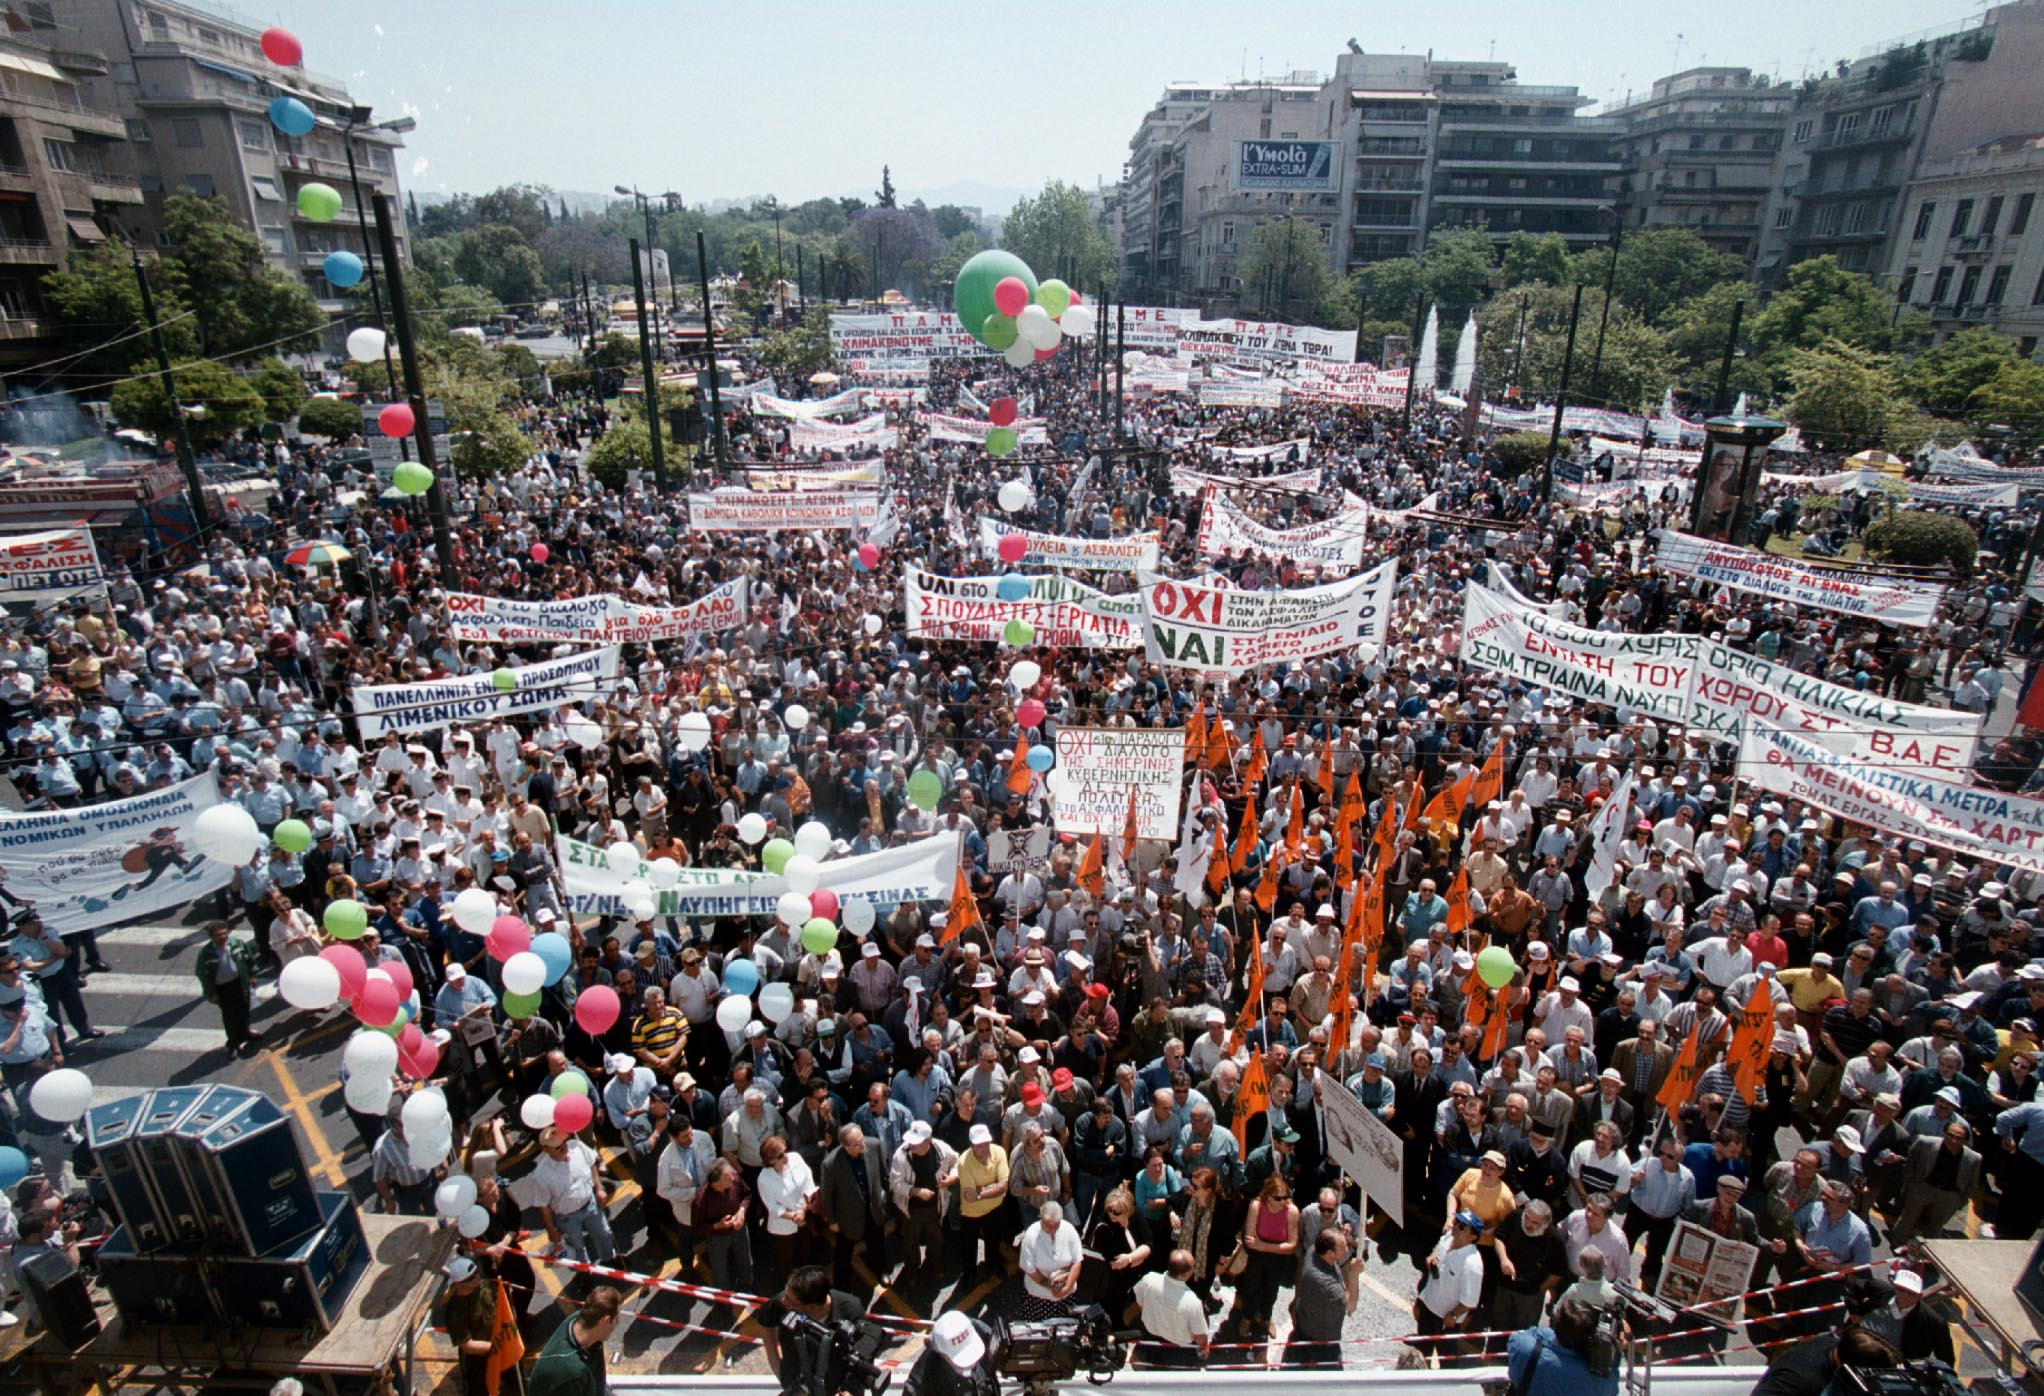 Thousands of Greeks protest against pension cuts